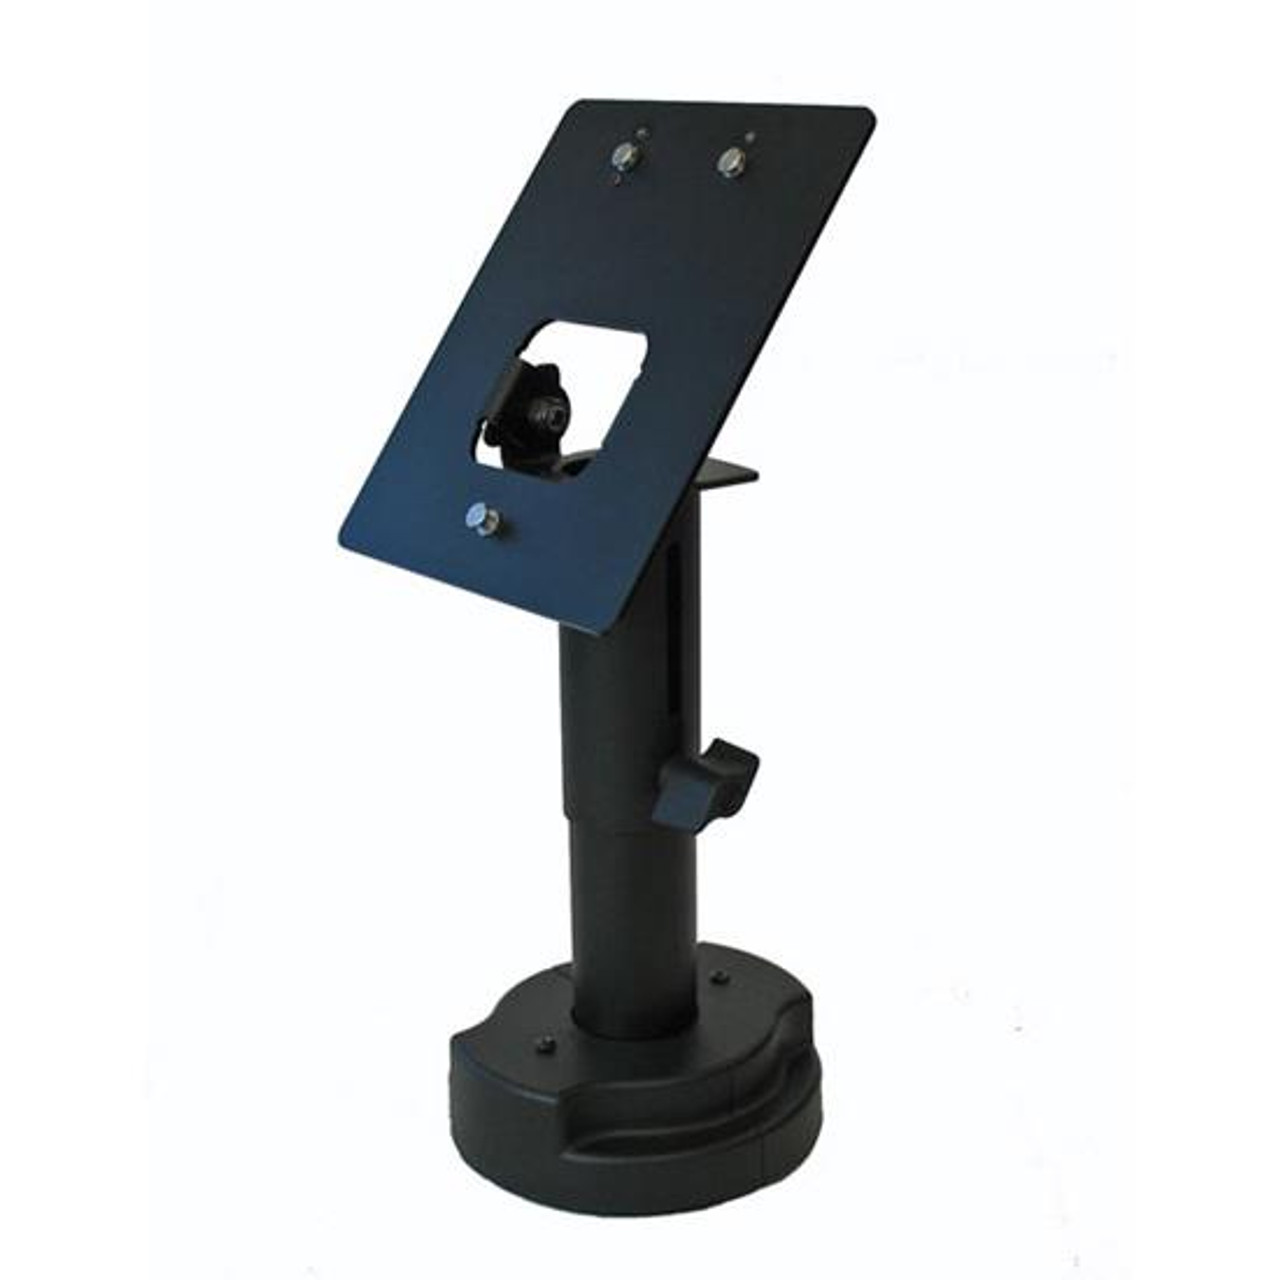 Swivel Stands Credit Card Stand Telescoping Pedestal VeriFone MX880